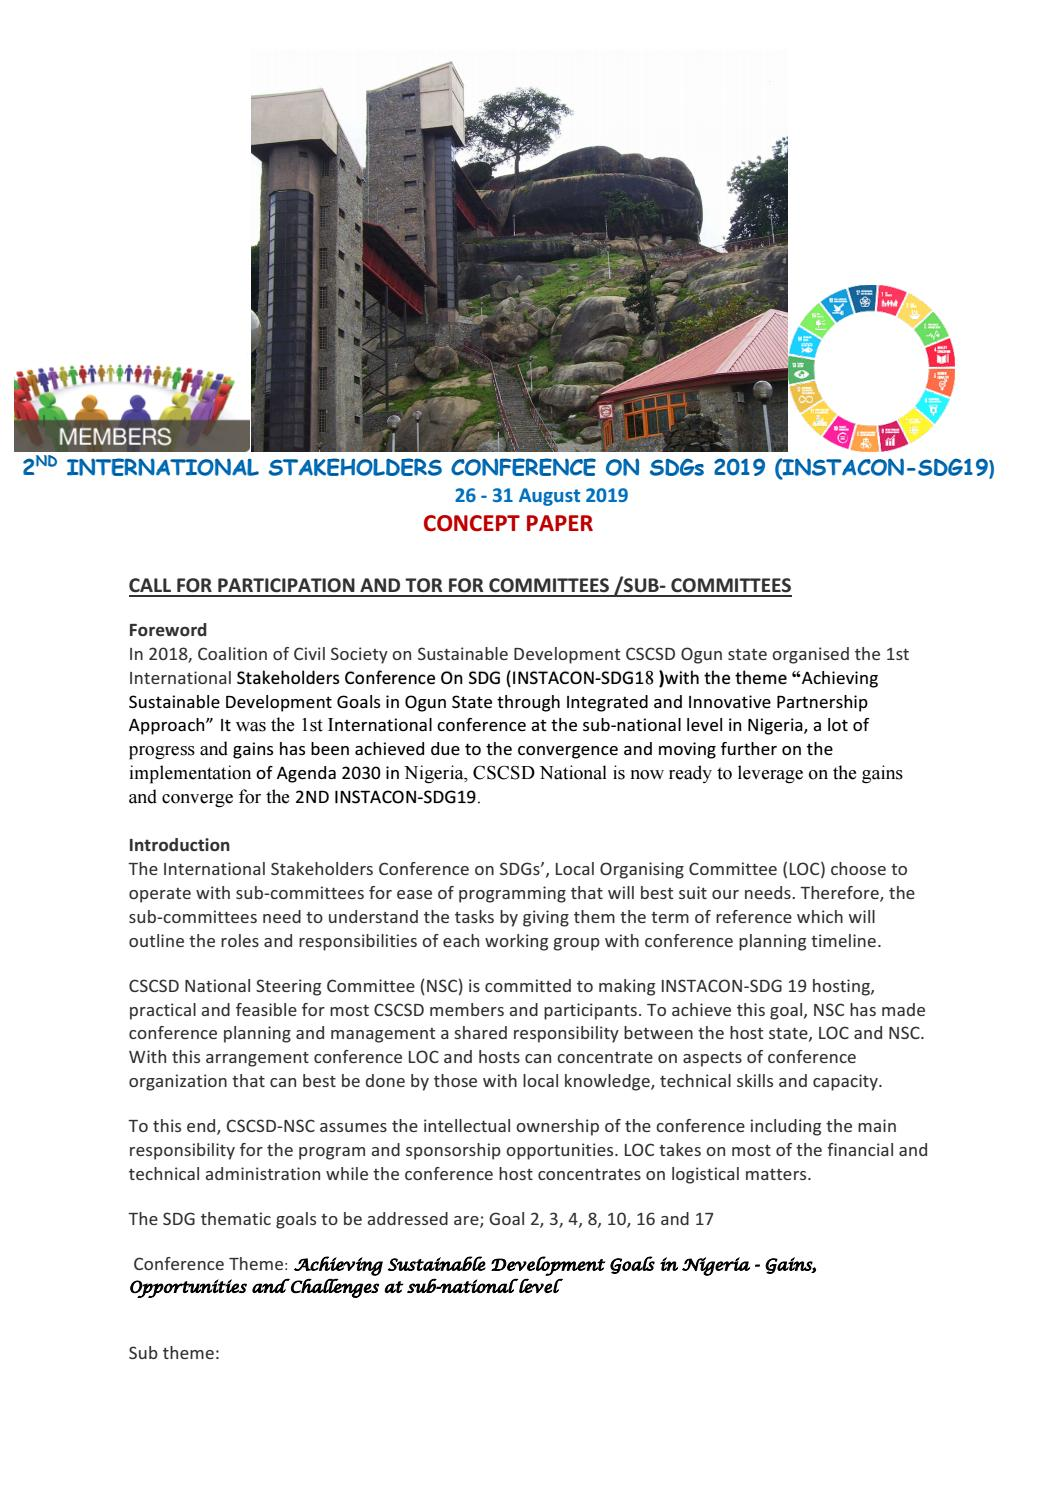 Call for Participation and TOR for Committees and Sub